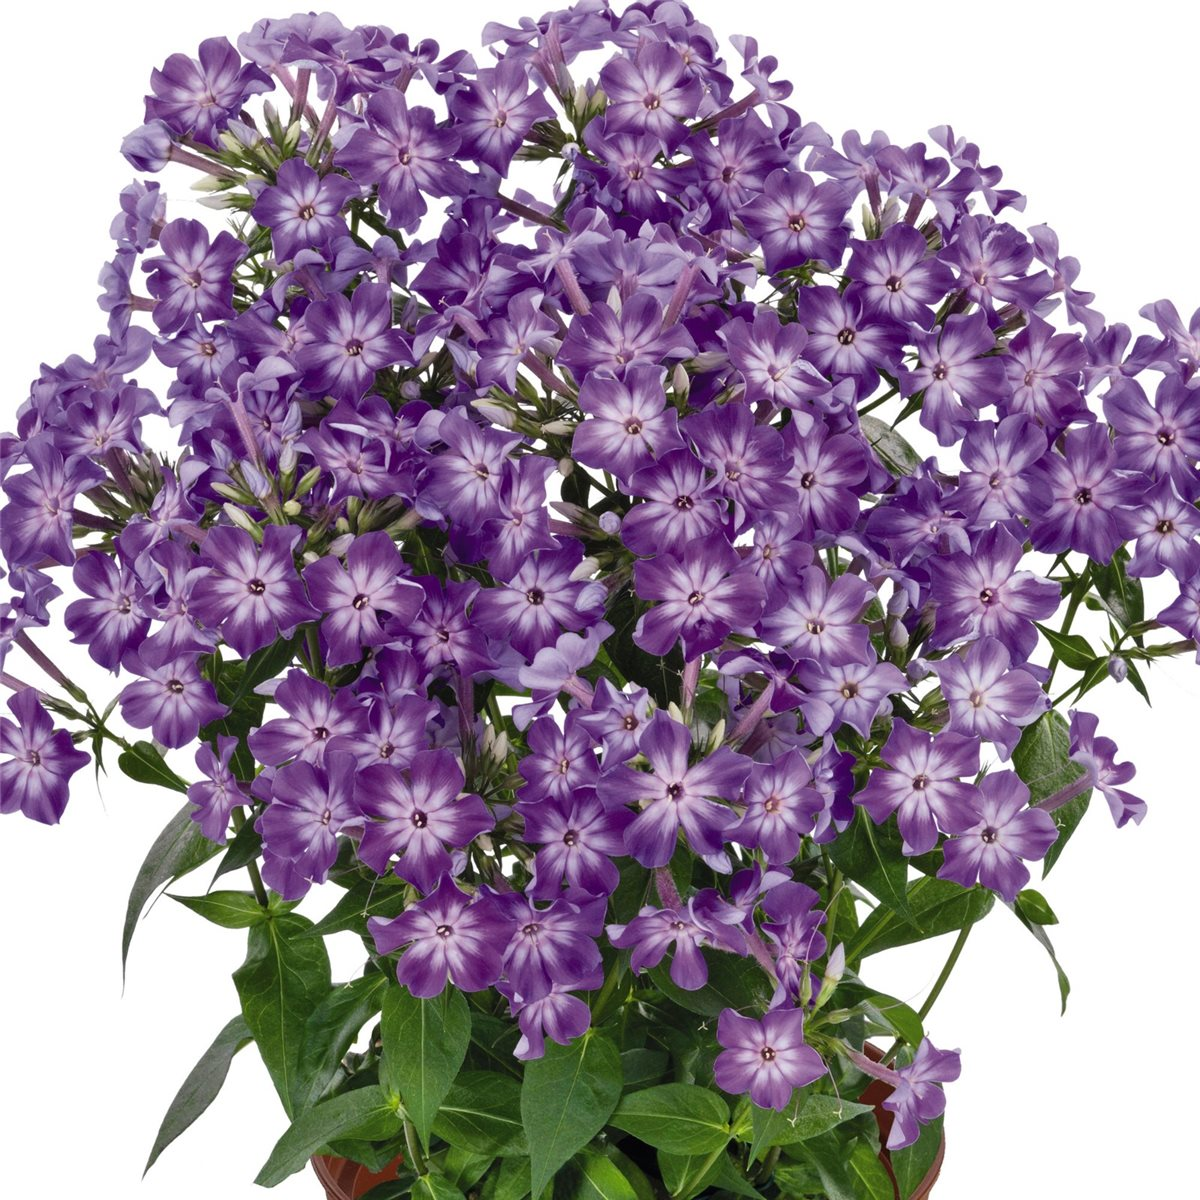 early purple eye flammenblume phlox paniculata k bel farbkr ftig staude robust ebay. Black Bedroom Furniture Sets. Home Design Ideas